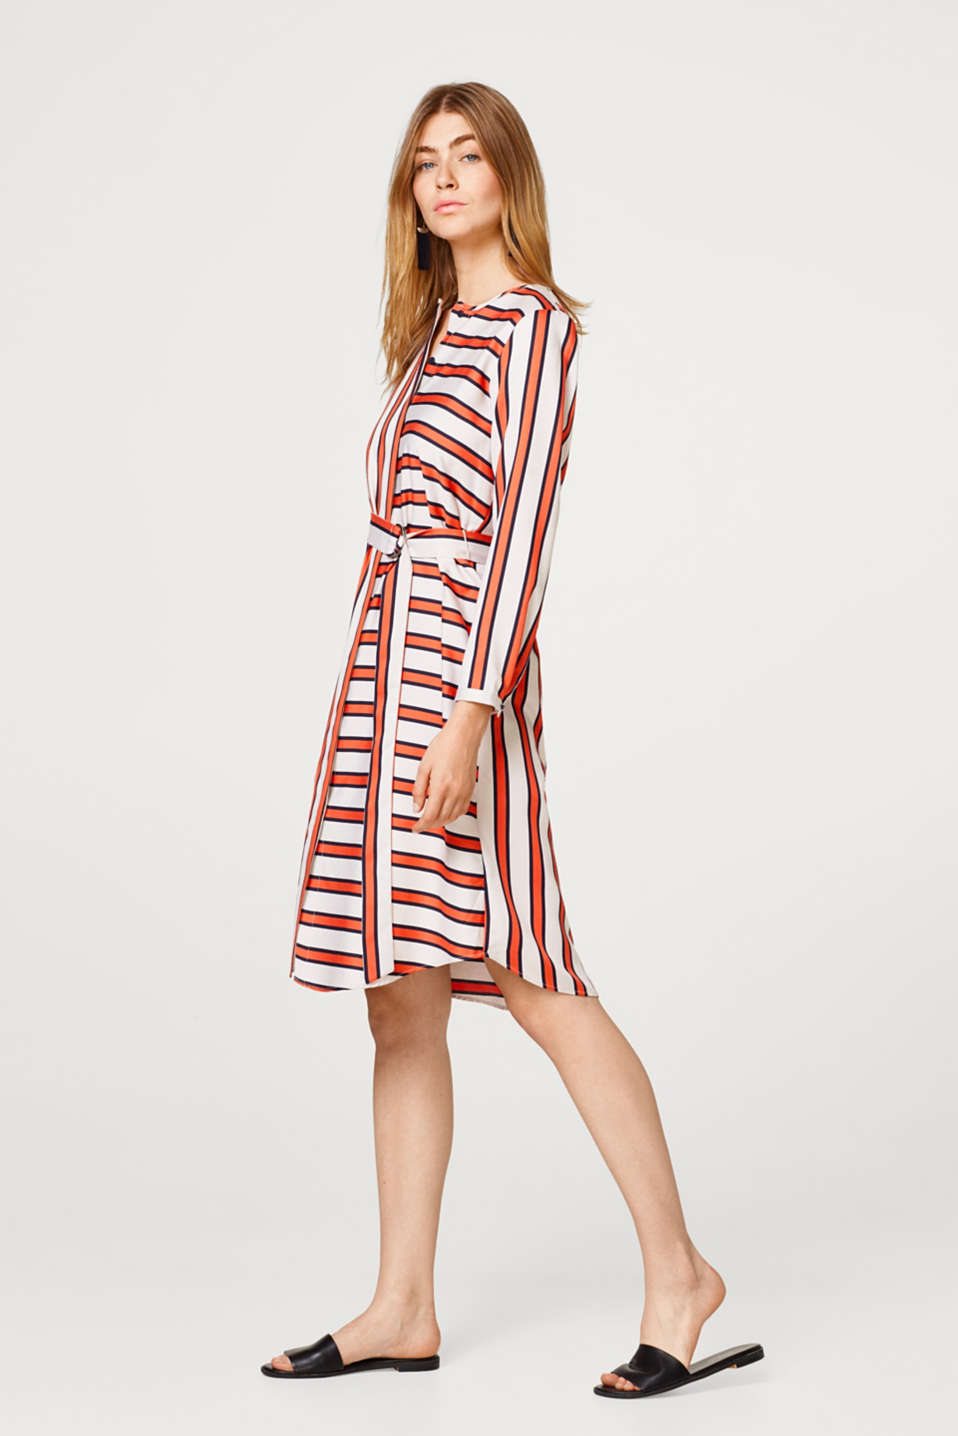 Soft midi length dress in a new striped look